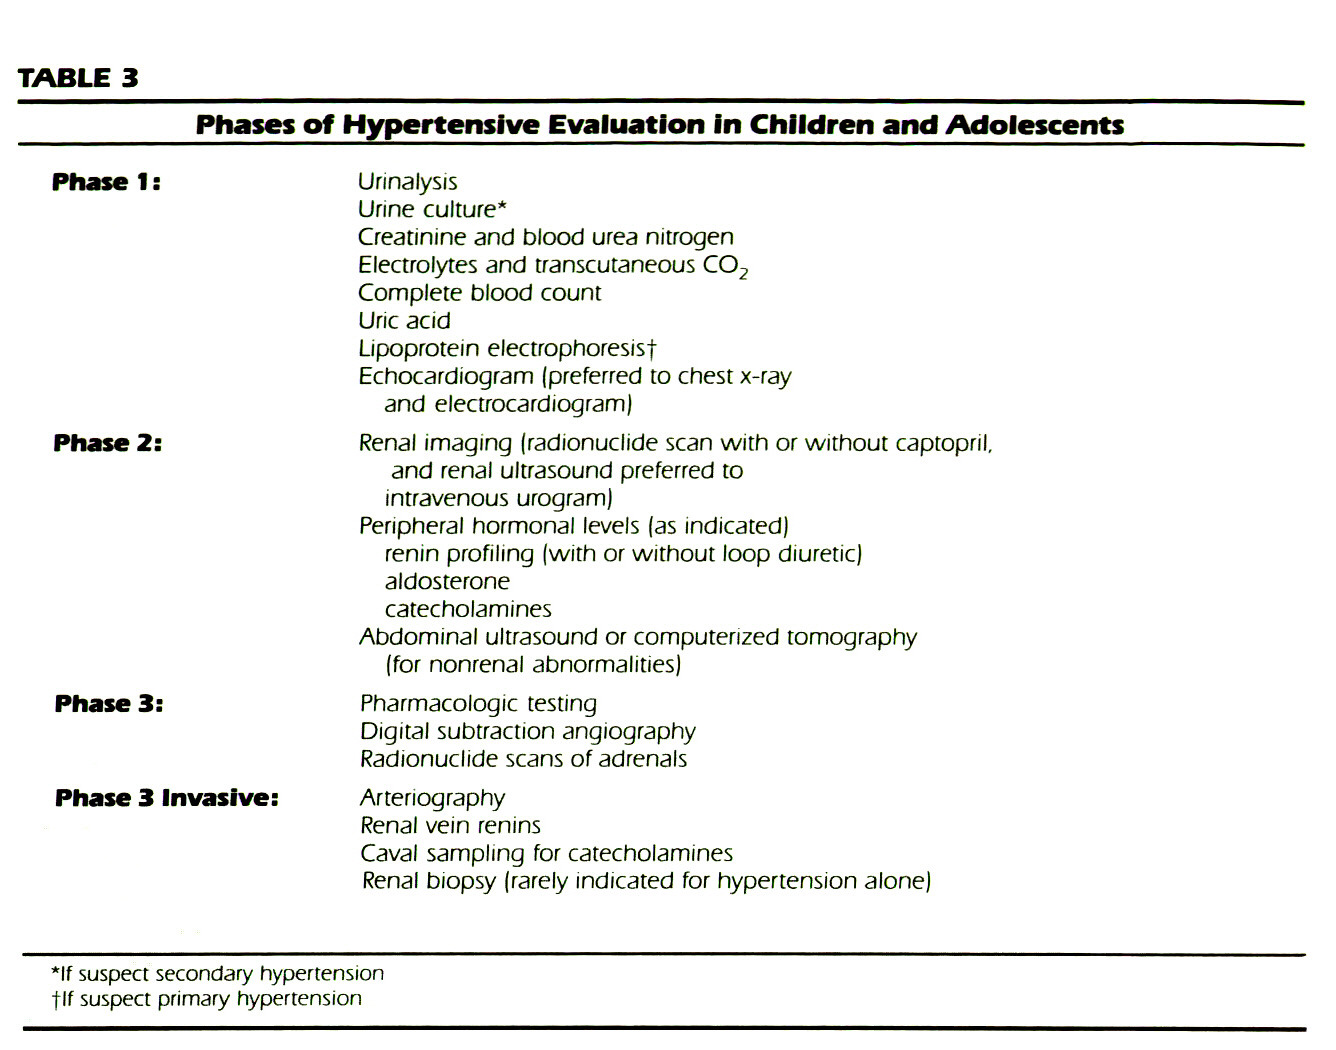 TABLE 3Phases of Hypertensive Evaluation in Children and Adolescents